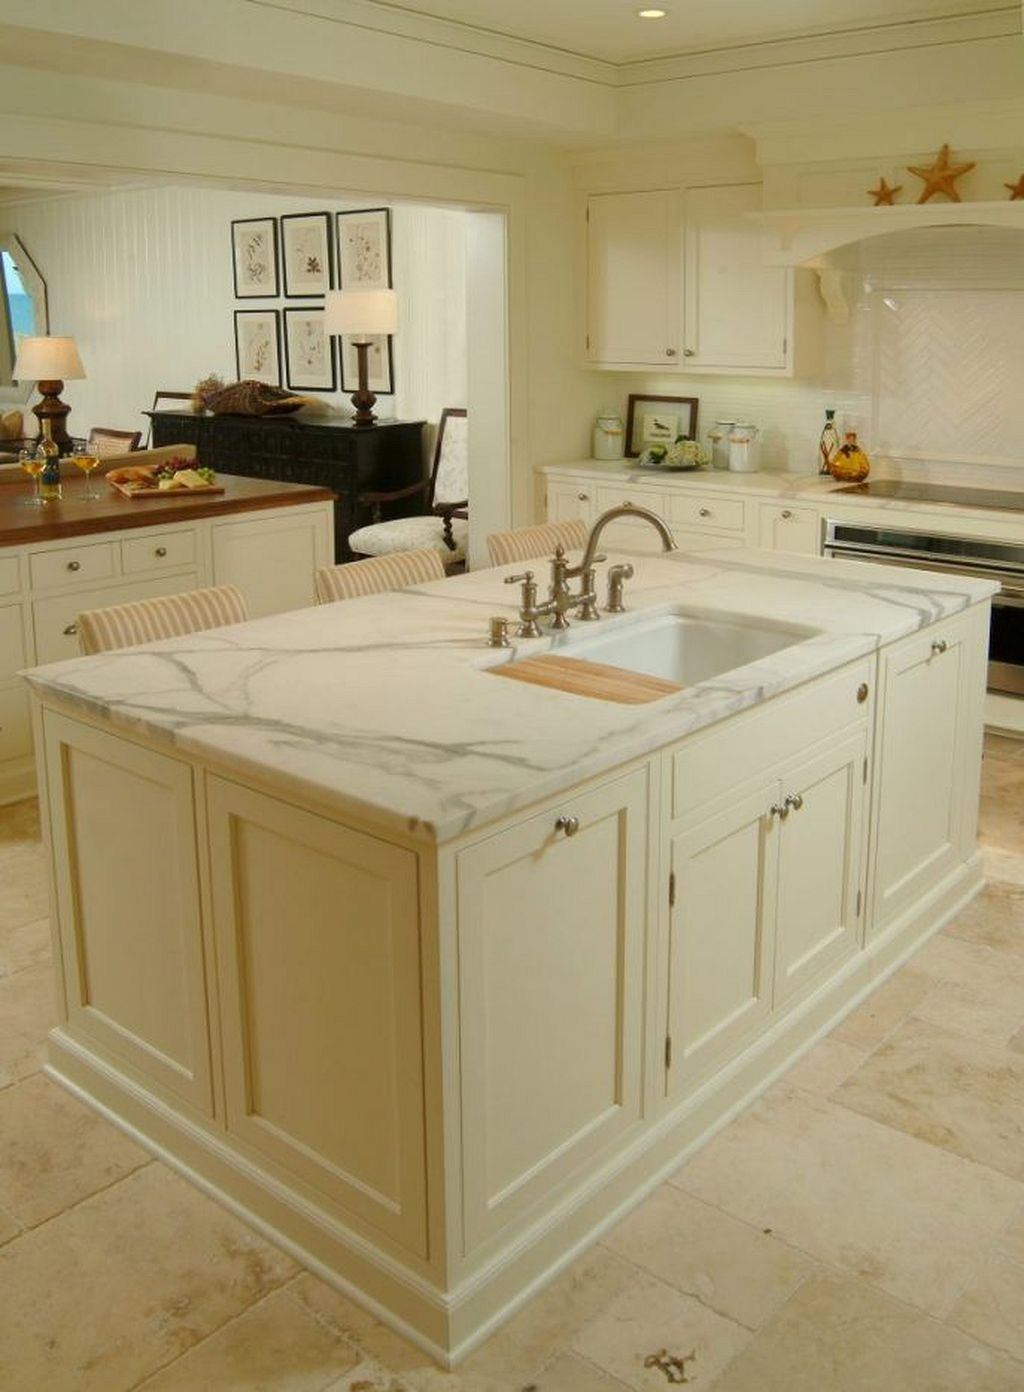 deluxe custom kitchen island designs 43 kitchen island without seating cheap kitchen islands on kitchen remodel no island id=71509